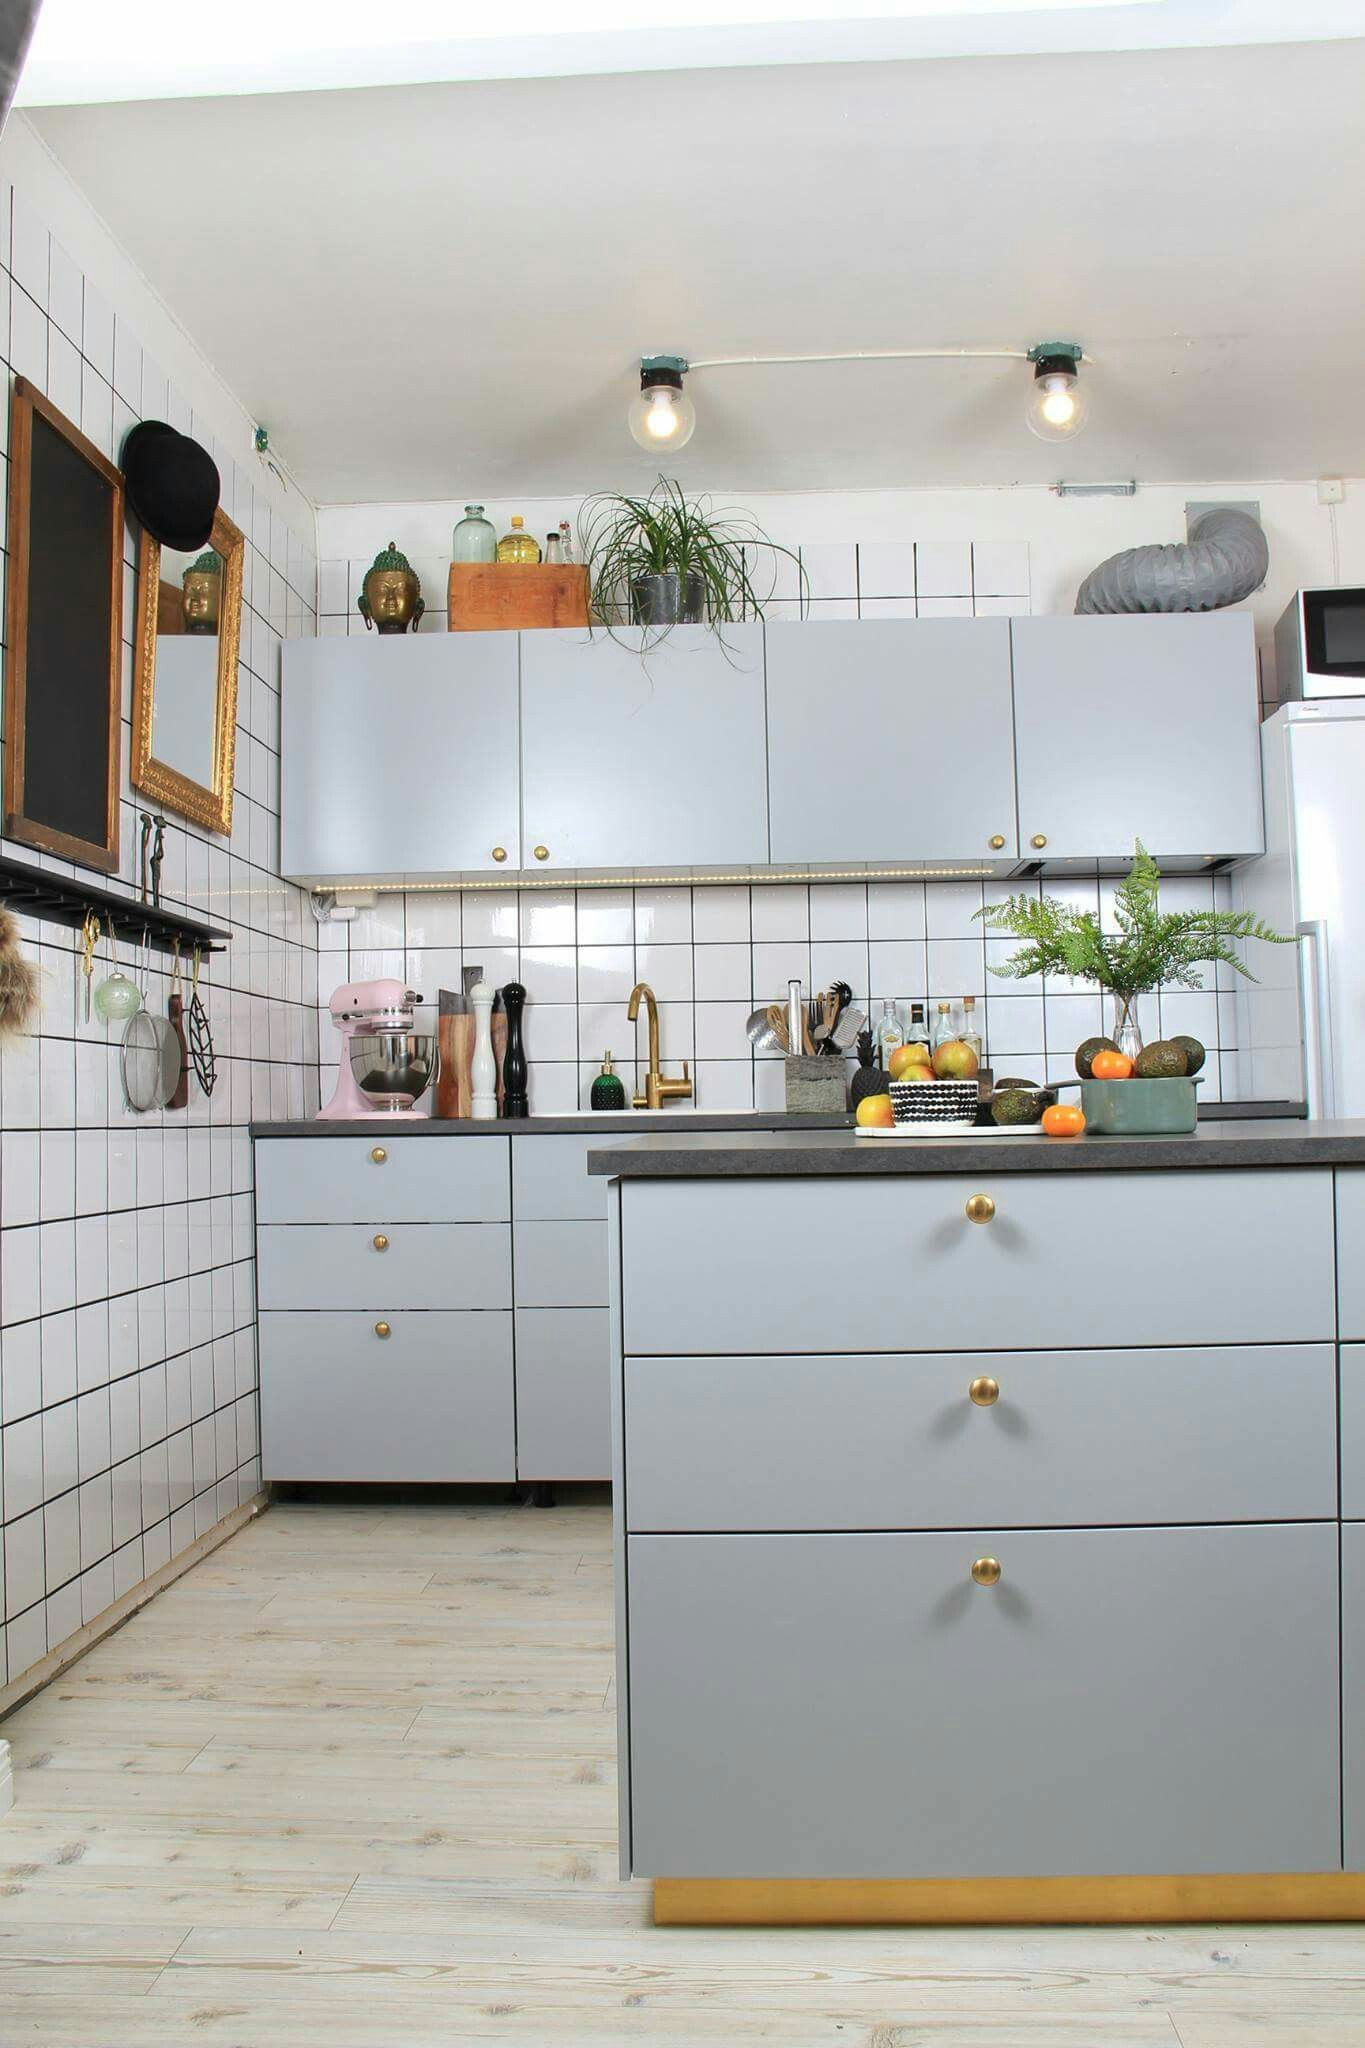 Ikea Küche Veddinge Ikea Kitchen Veddinge Grå Köksinspo Pinterest Kök